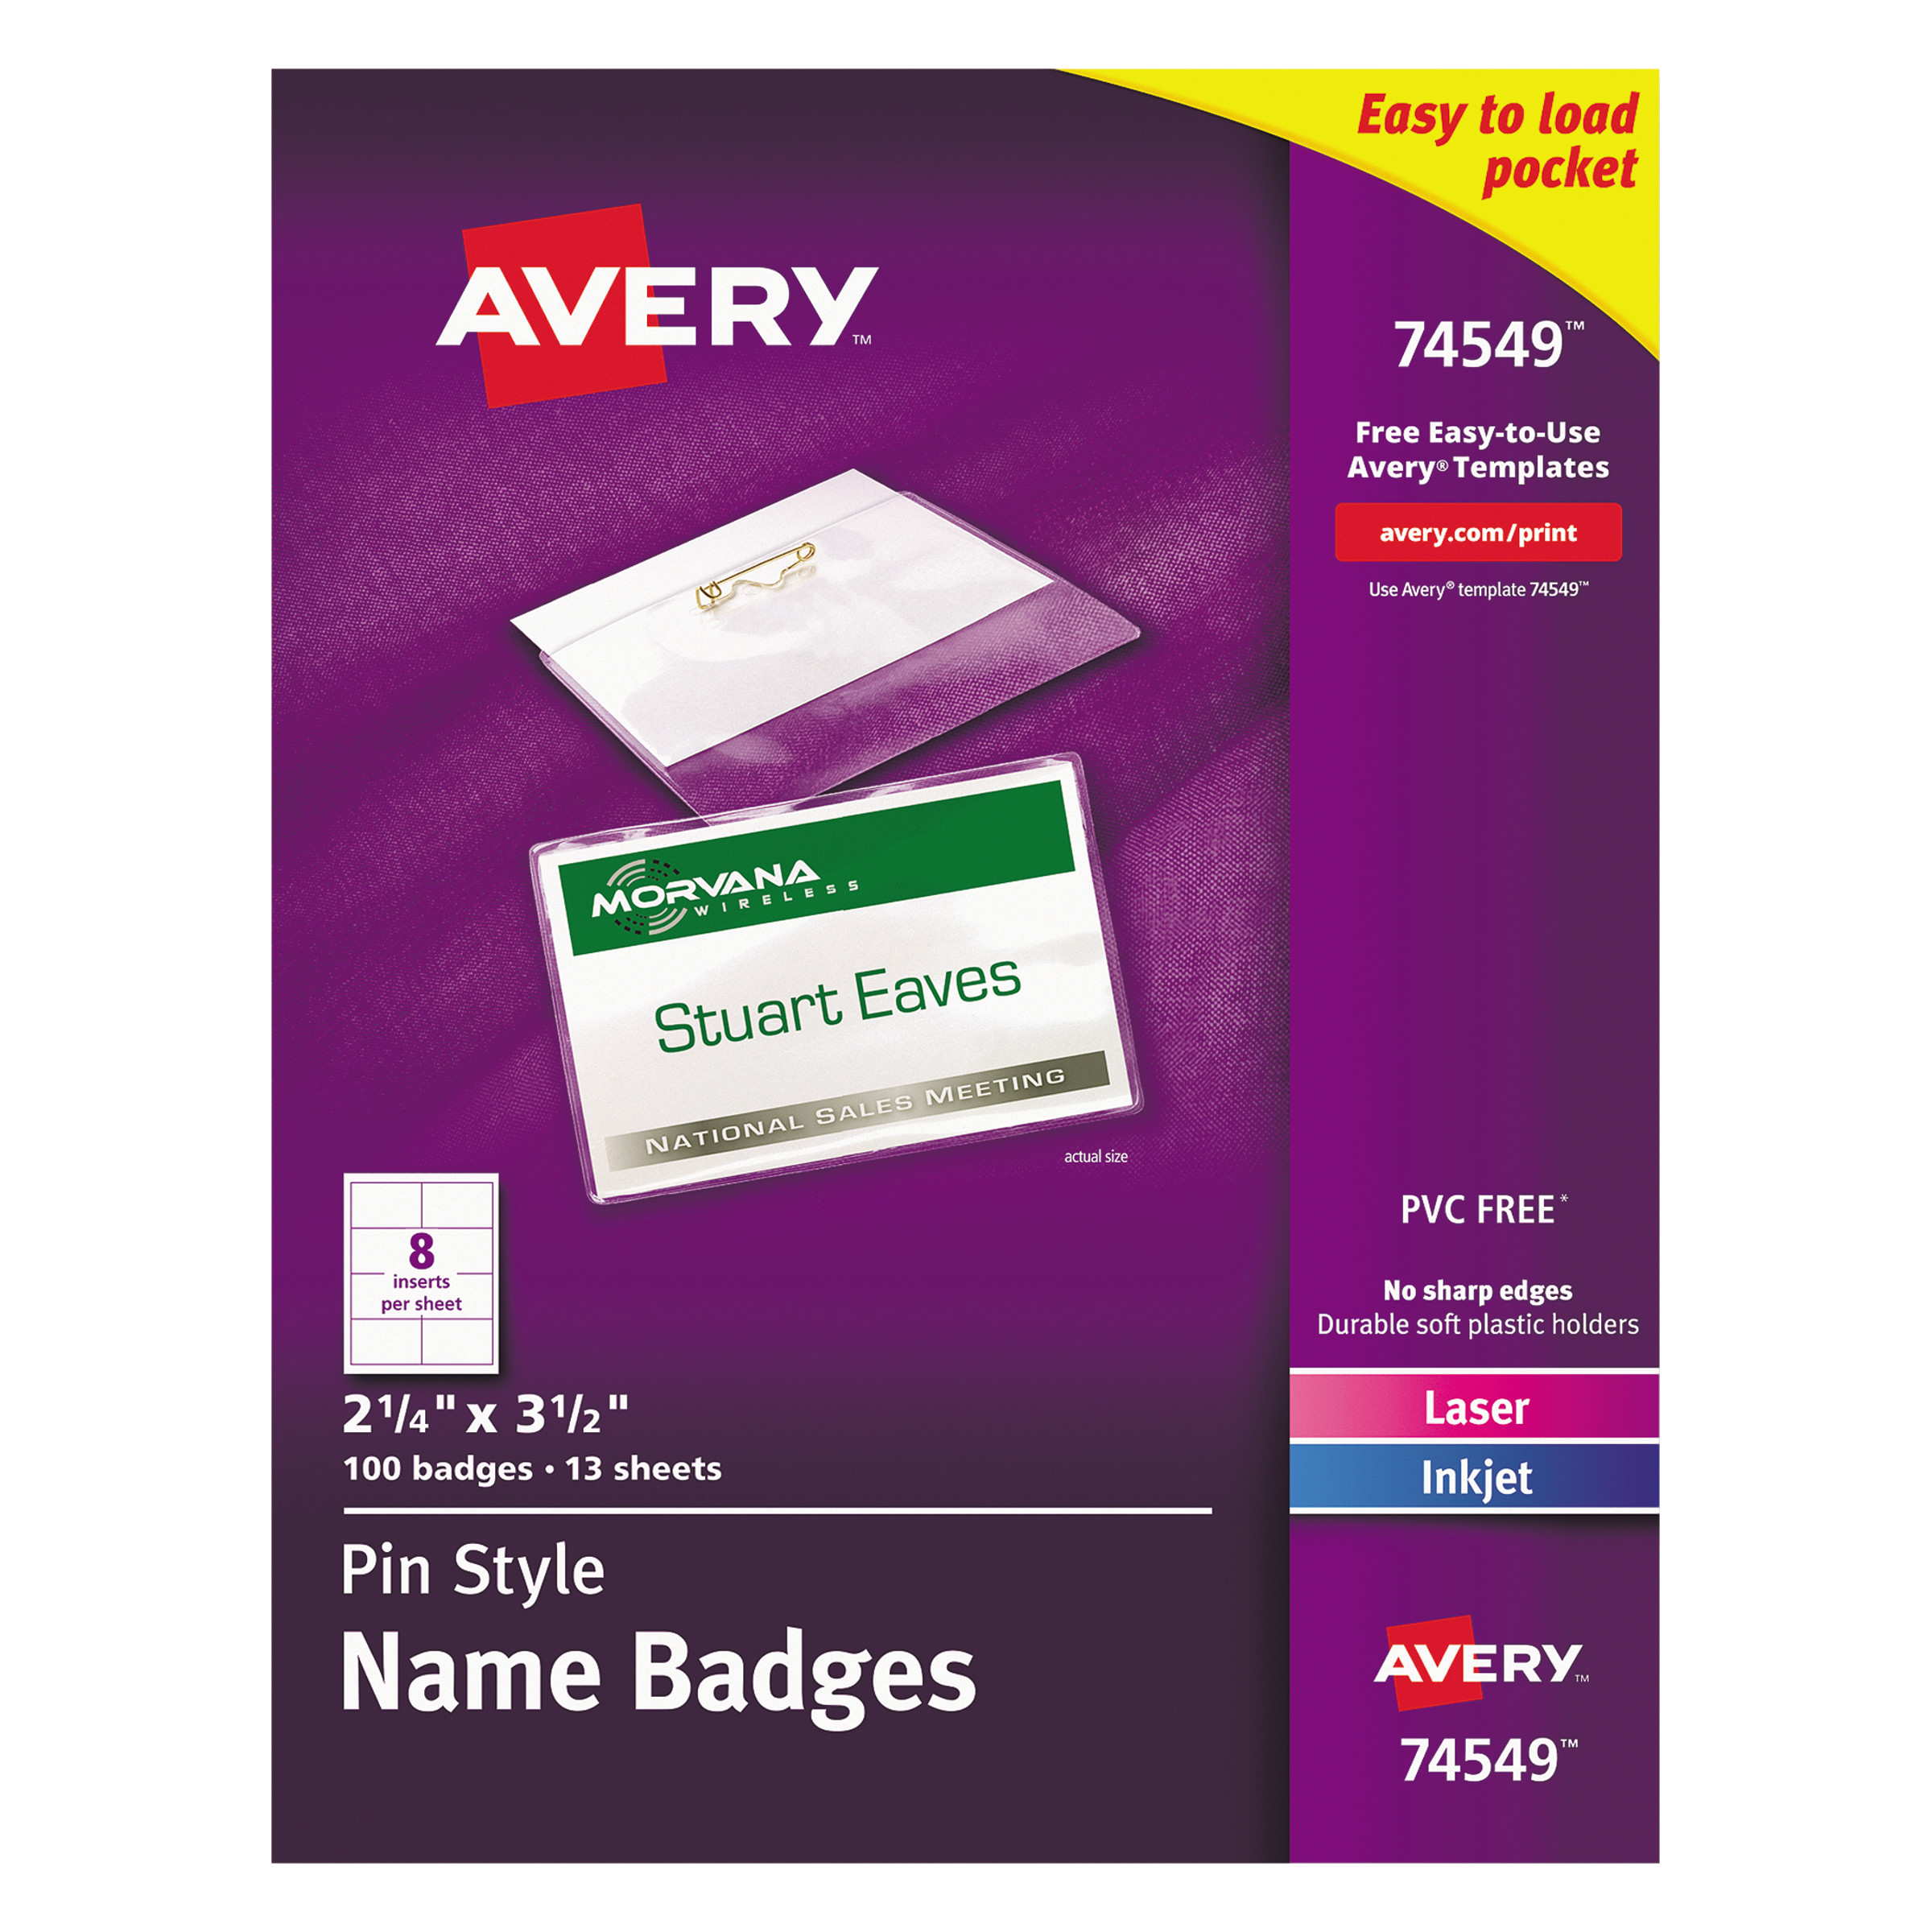 "Avery(R) Top-Loading Pin Style Name Badges 74549, 2-1/4"" x 3-1/2"", Box of 100"